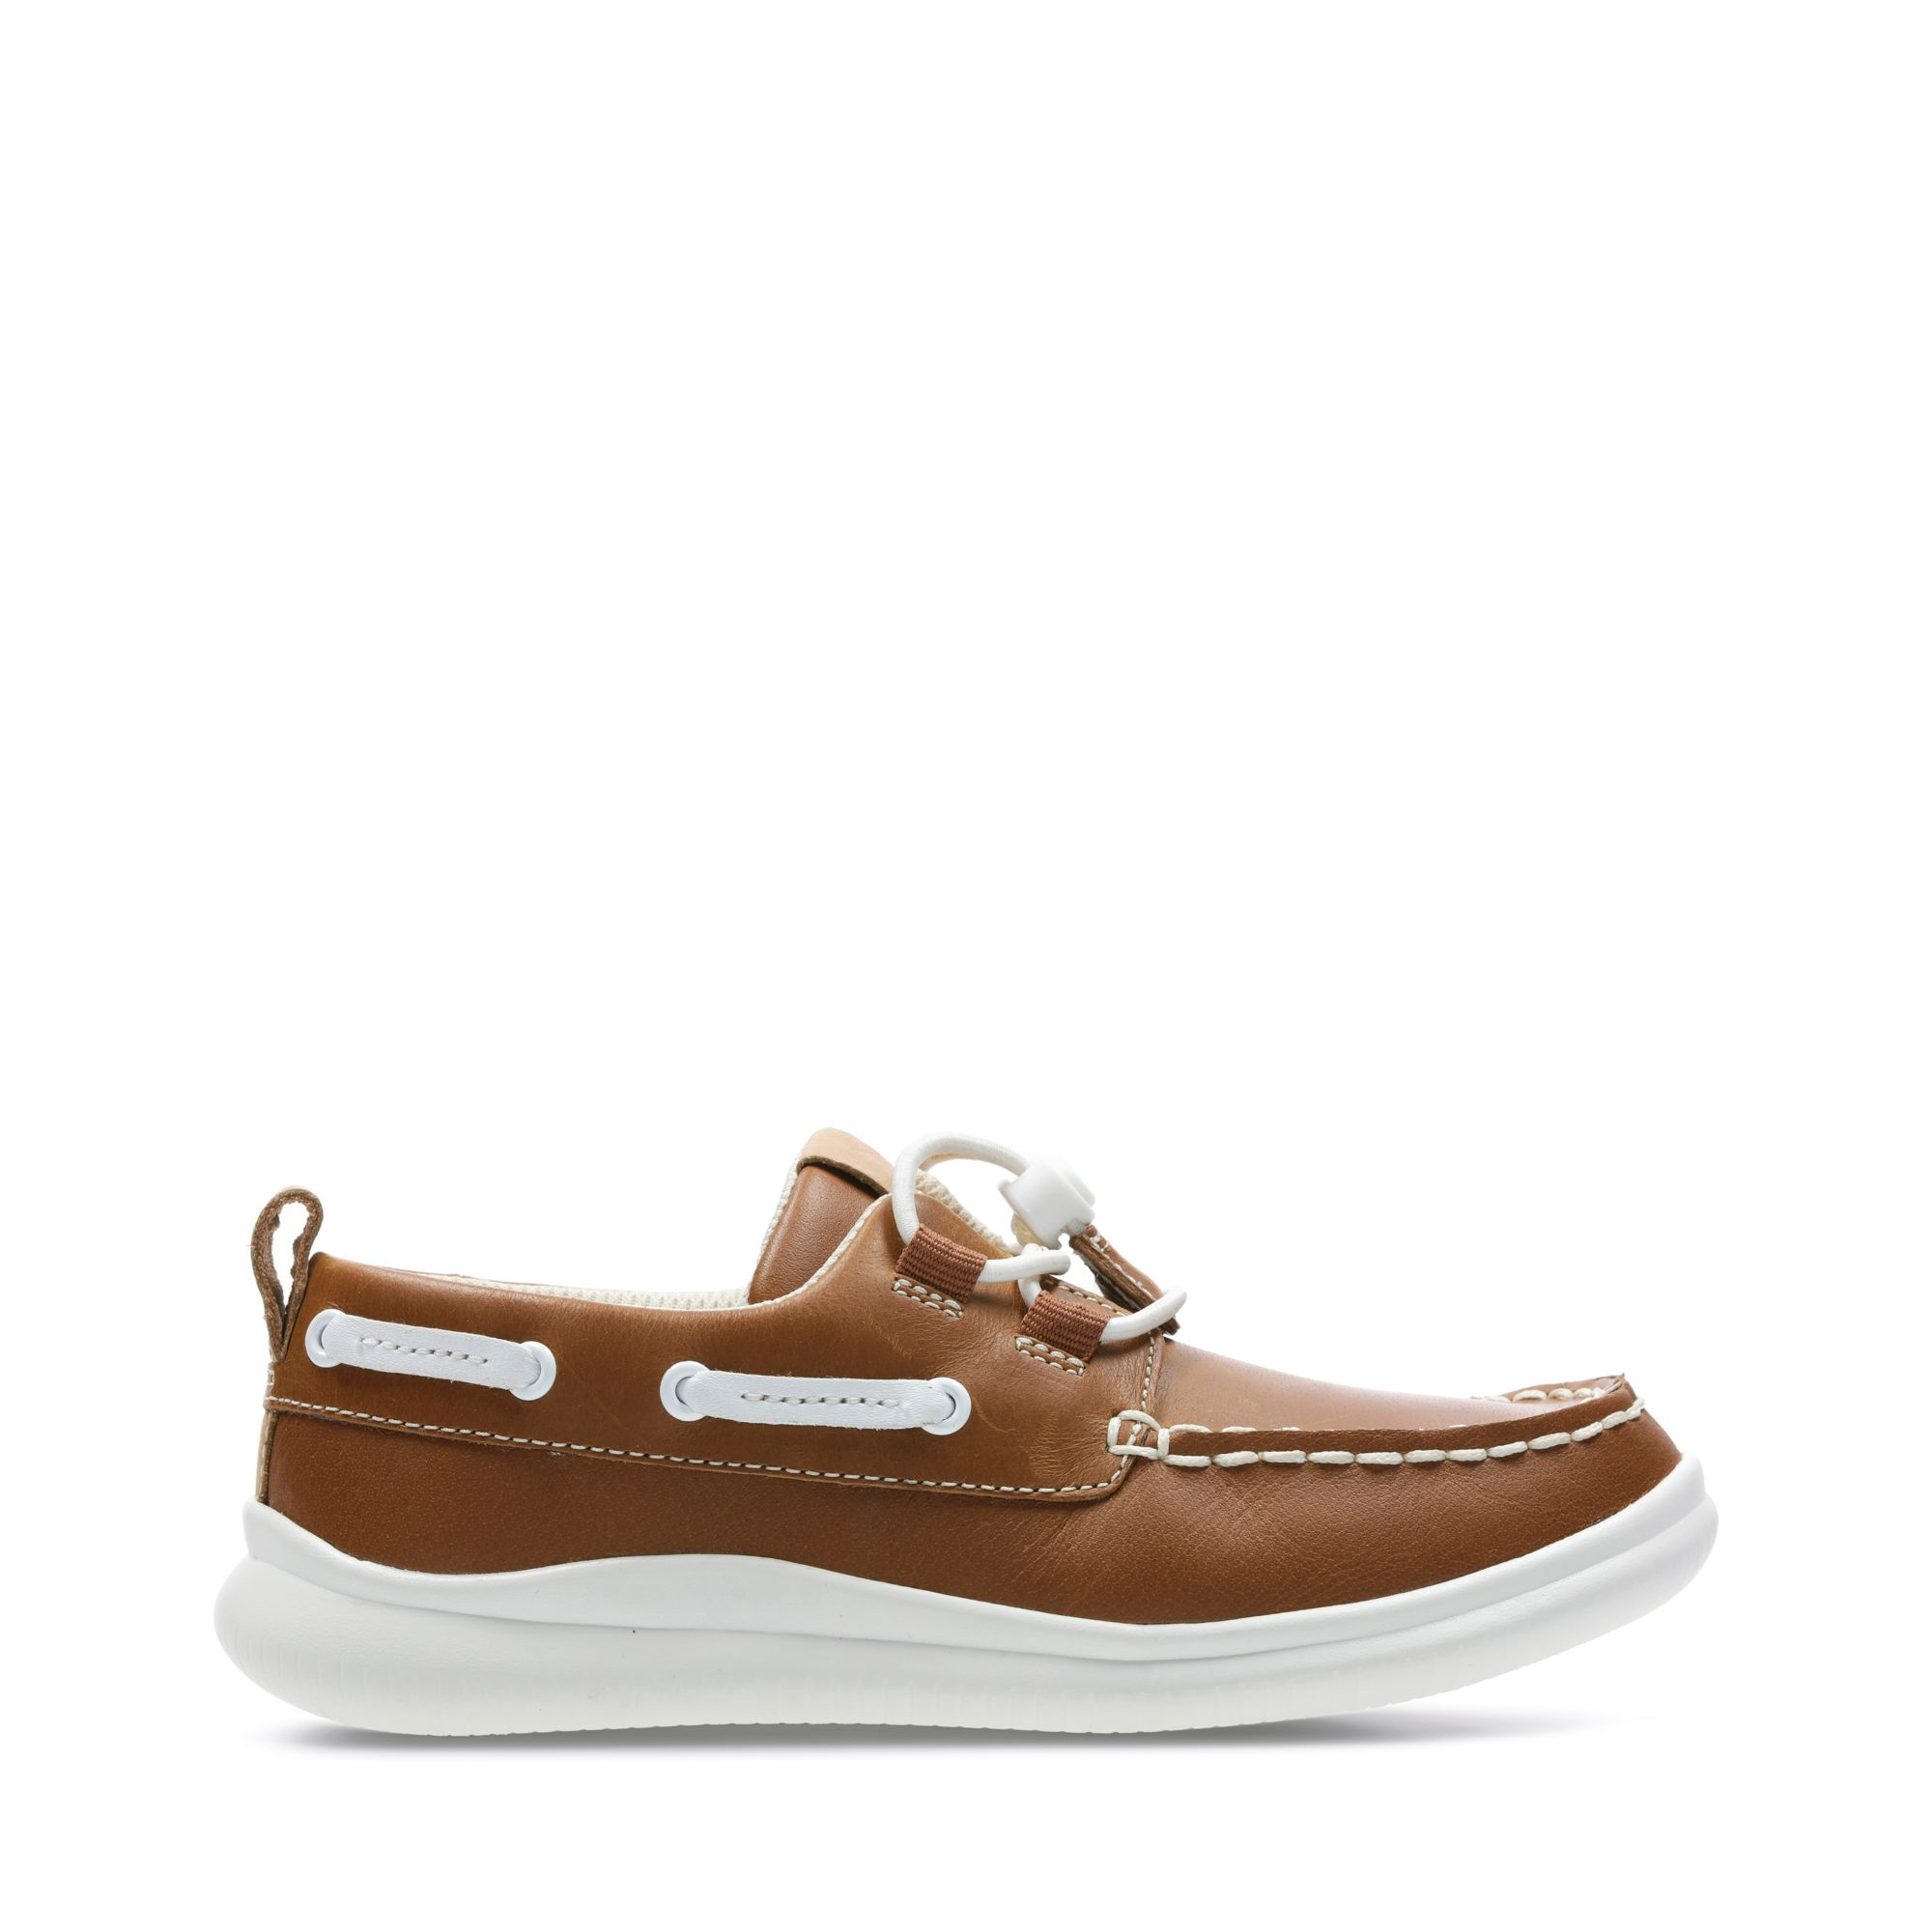 Clarks Cloud Swing - Tan Leather - Childrens 11.5